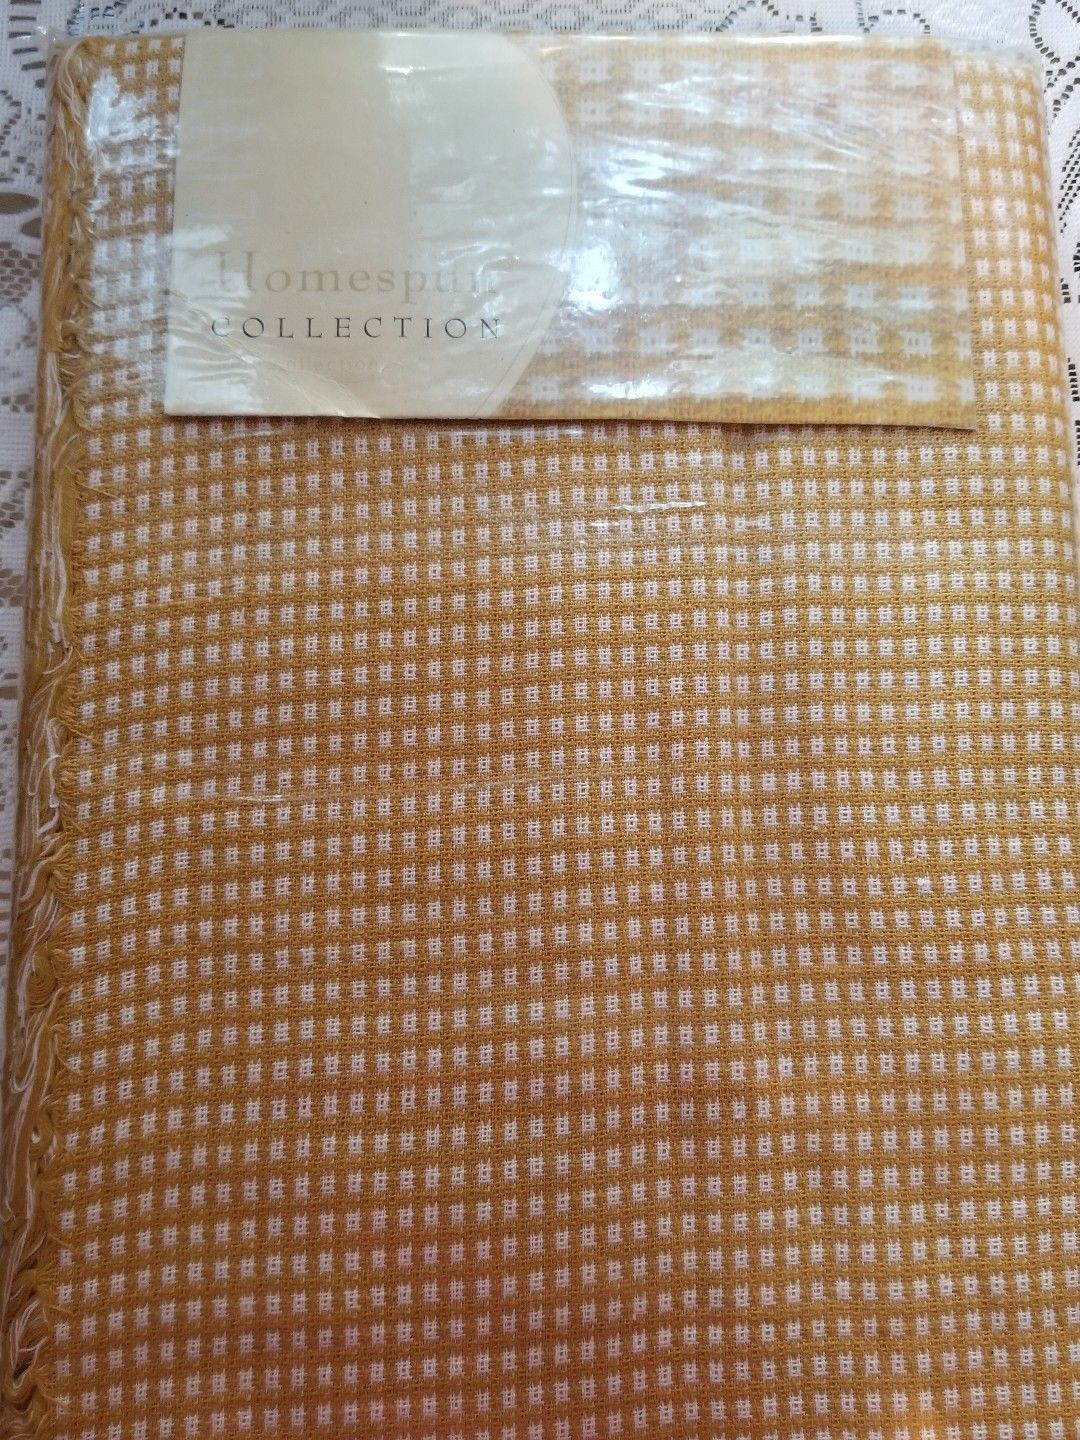 Primary image for Homespun collection Tablecloth gold white Rectangular NEW rare Christmas gift